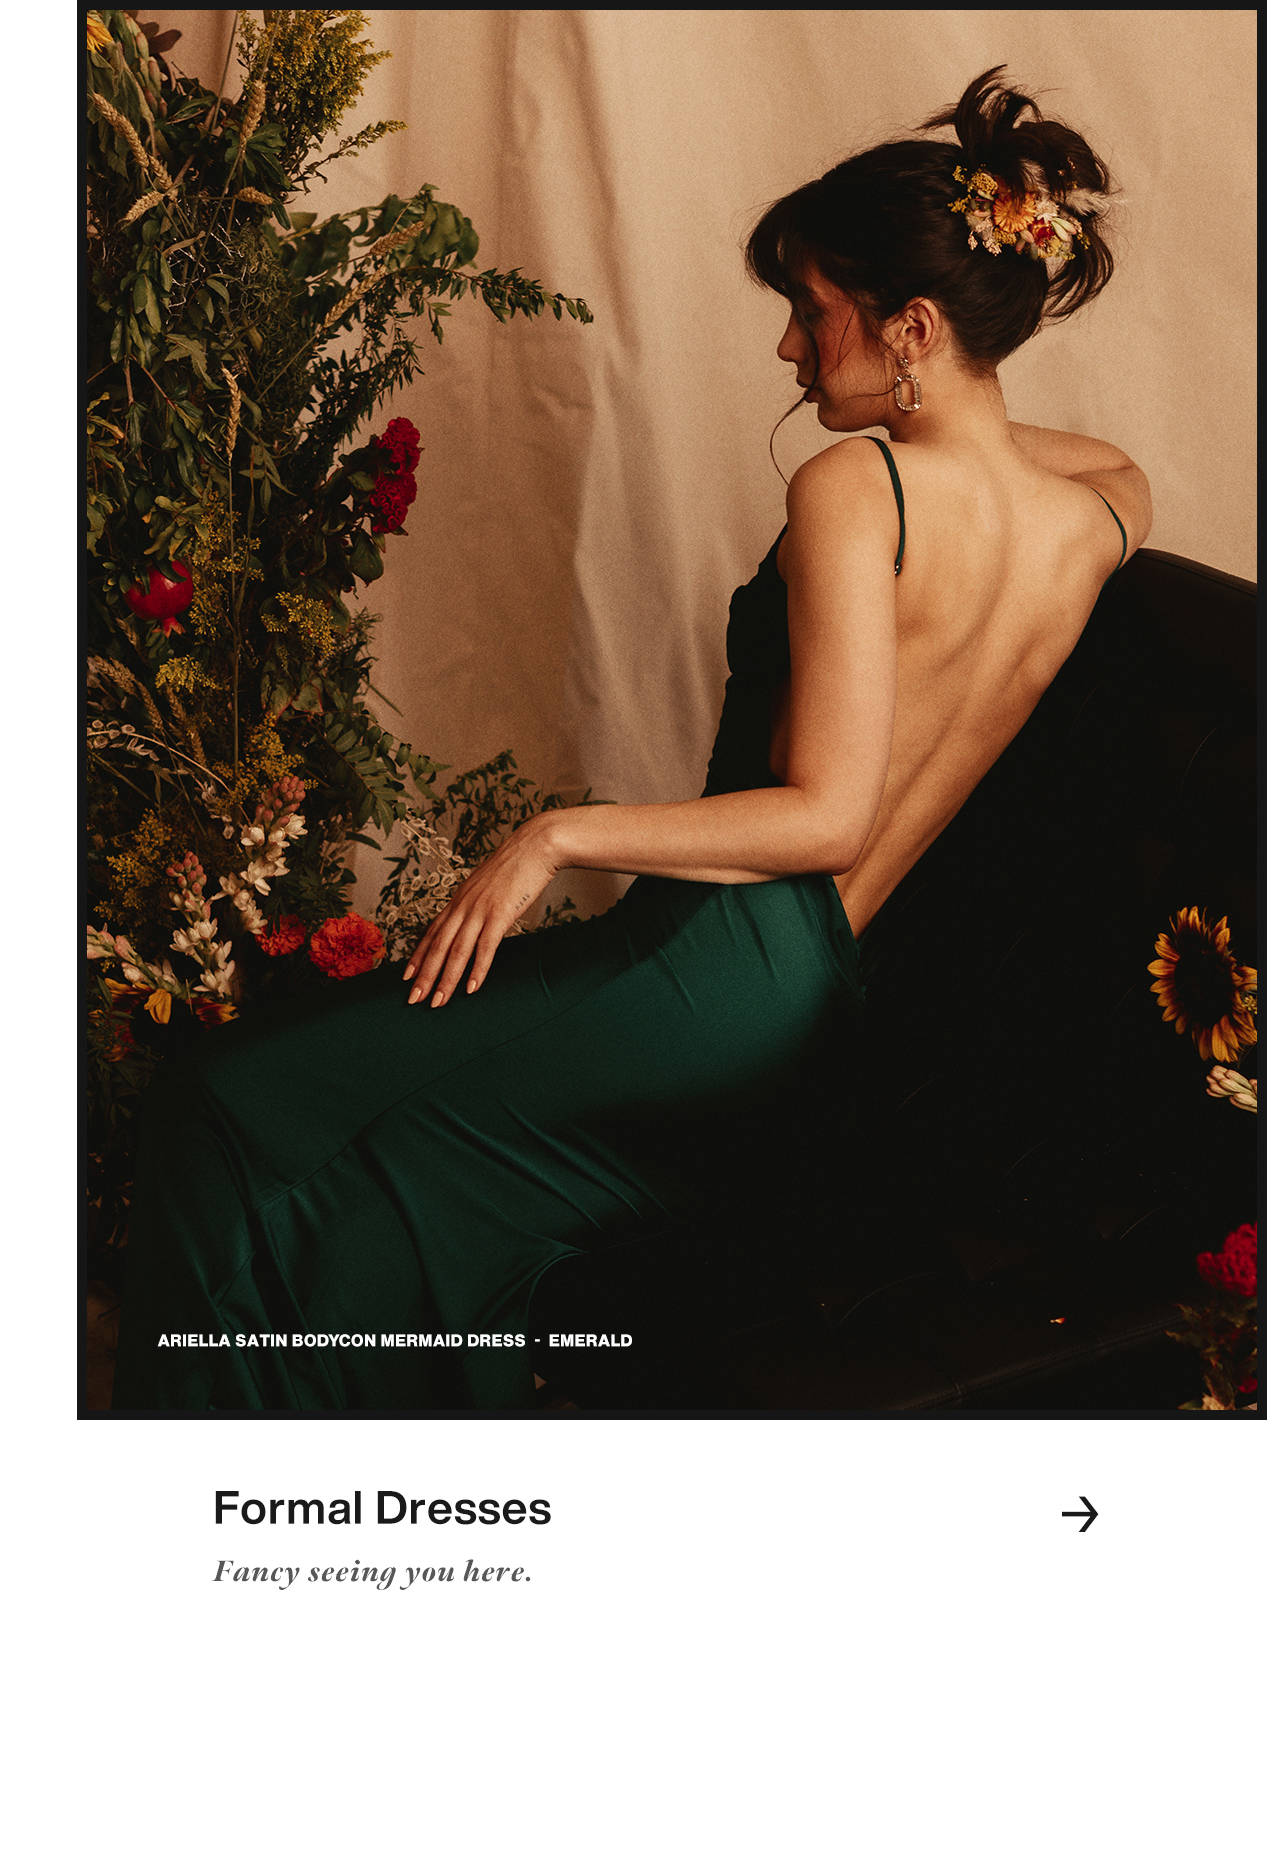 Formal Dresses: Fancy seeing you here.